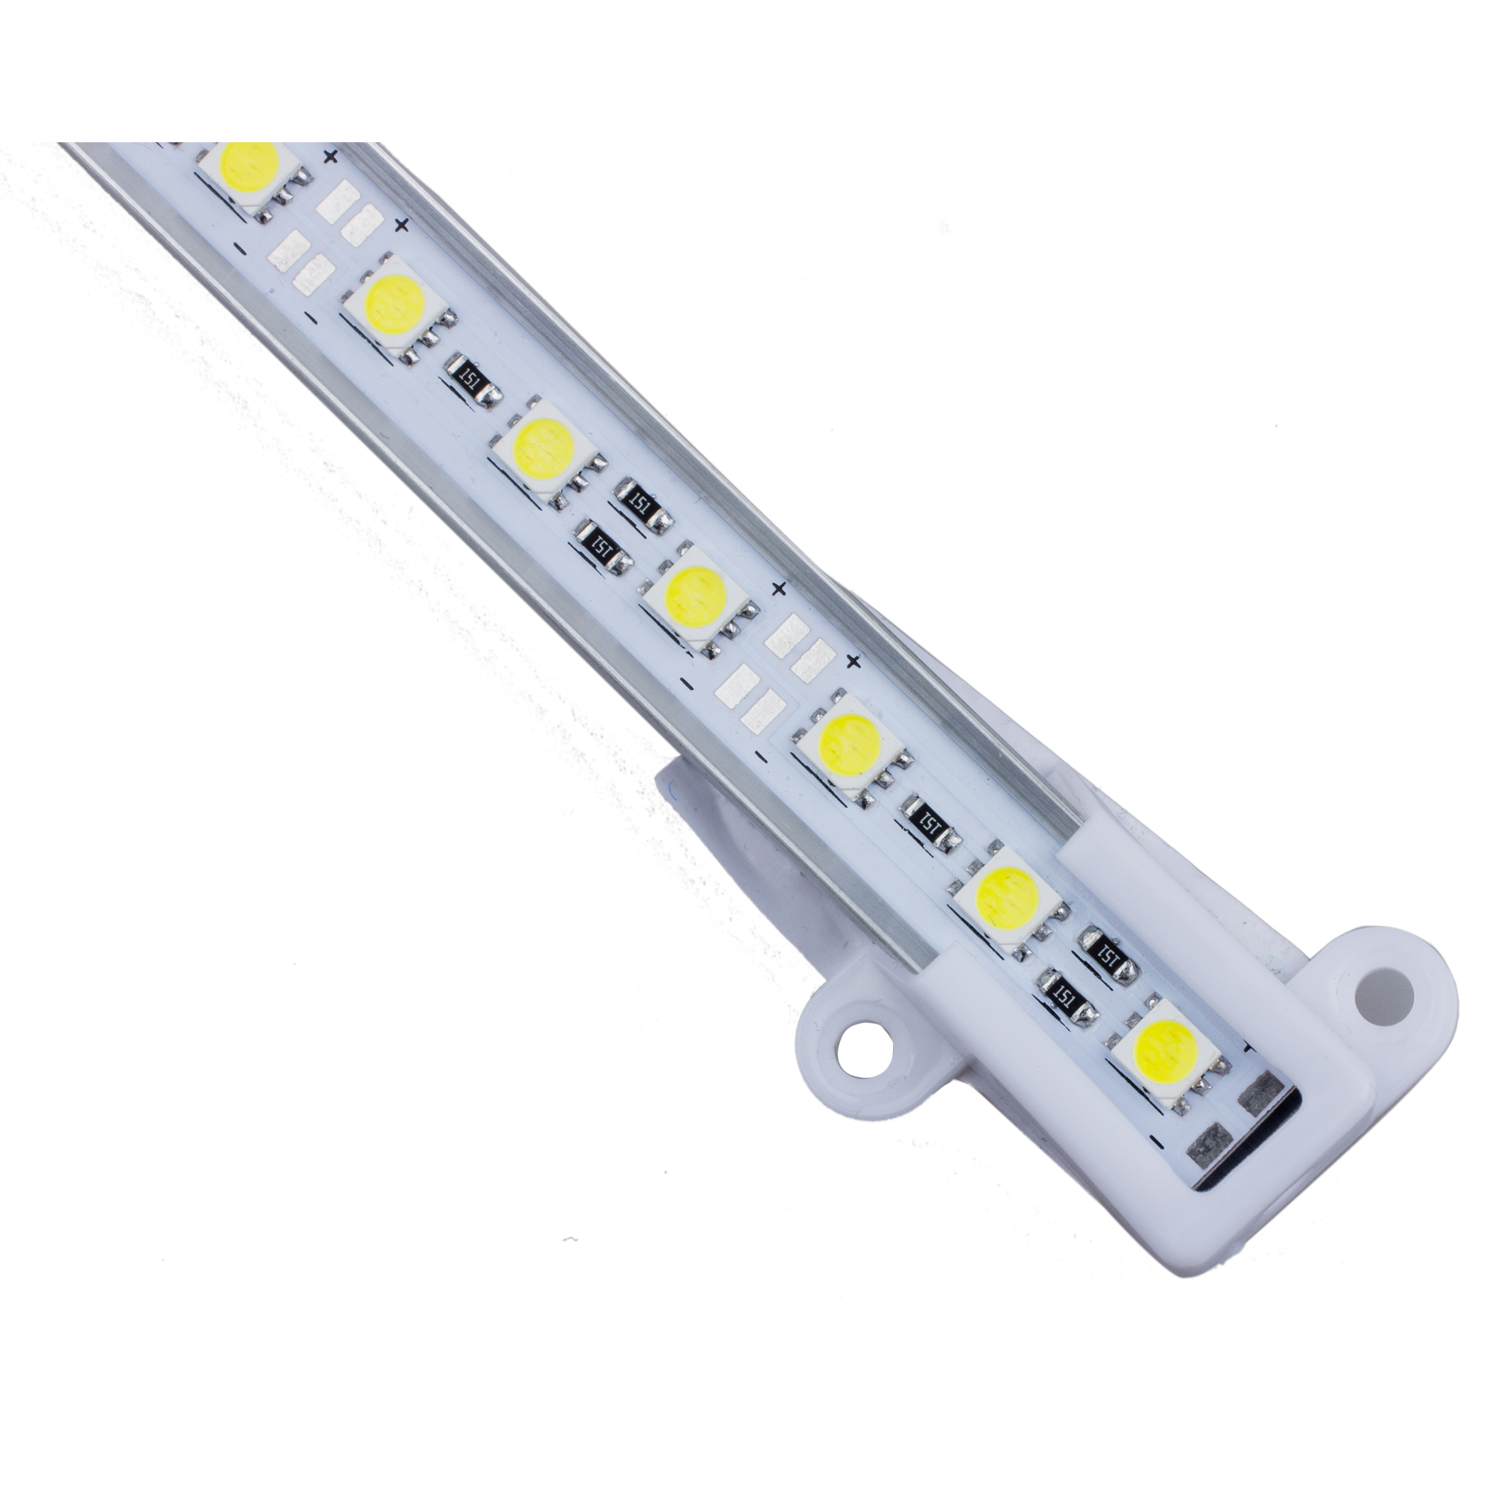 50 cm 5050 smd 36 led warmweiss aluminium starre strip bar licht lampe et ebay. Black Bedroom Furniture Sets. Home Design Ideas